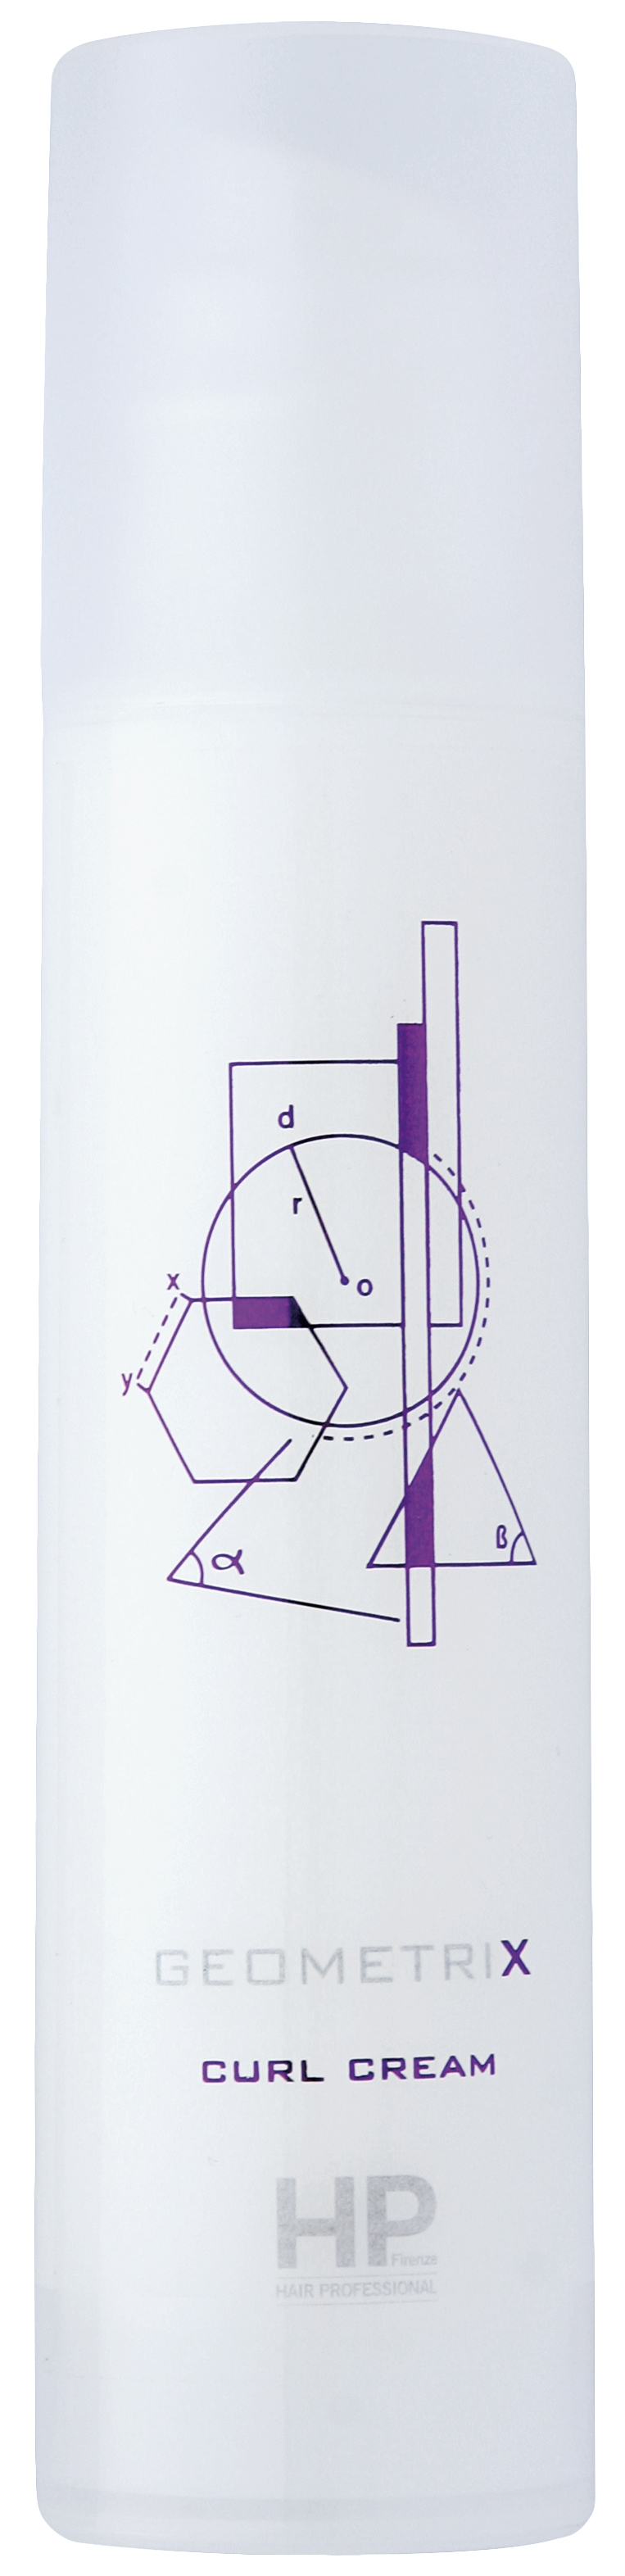 HP Geometrix Curl Cream 200 ml